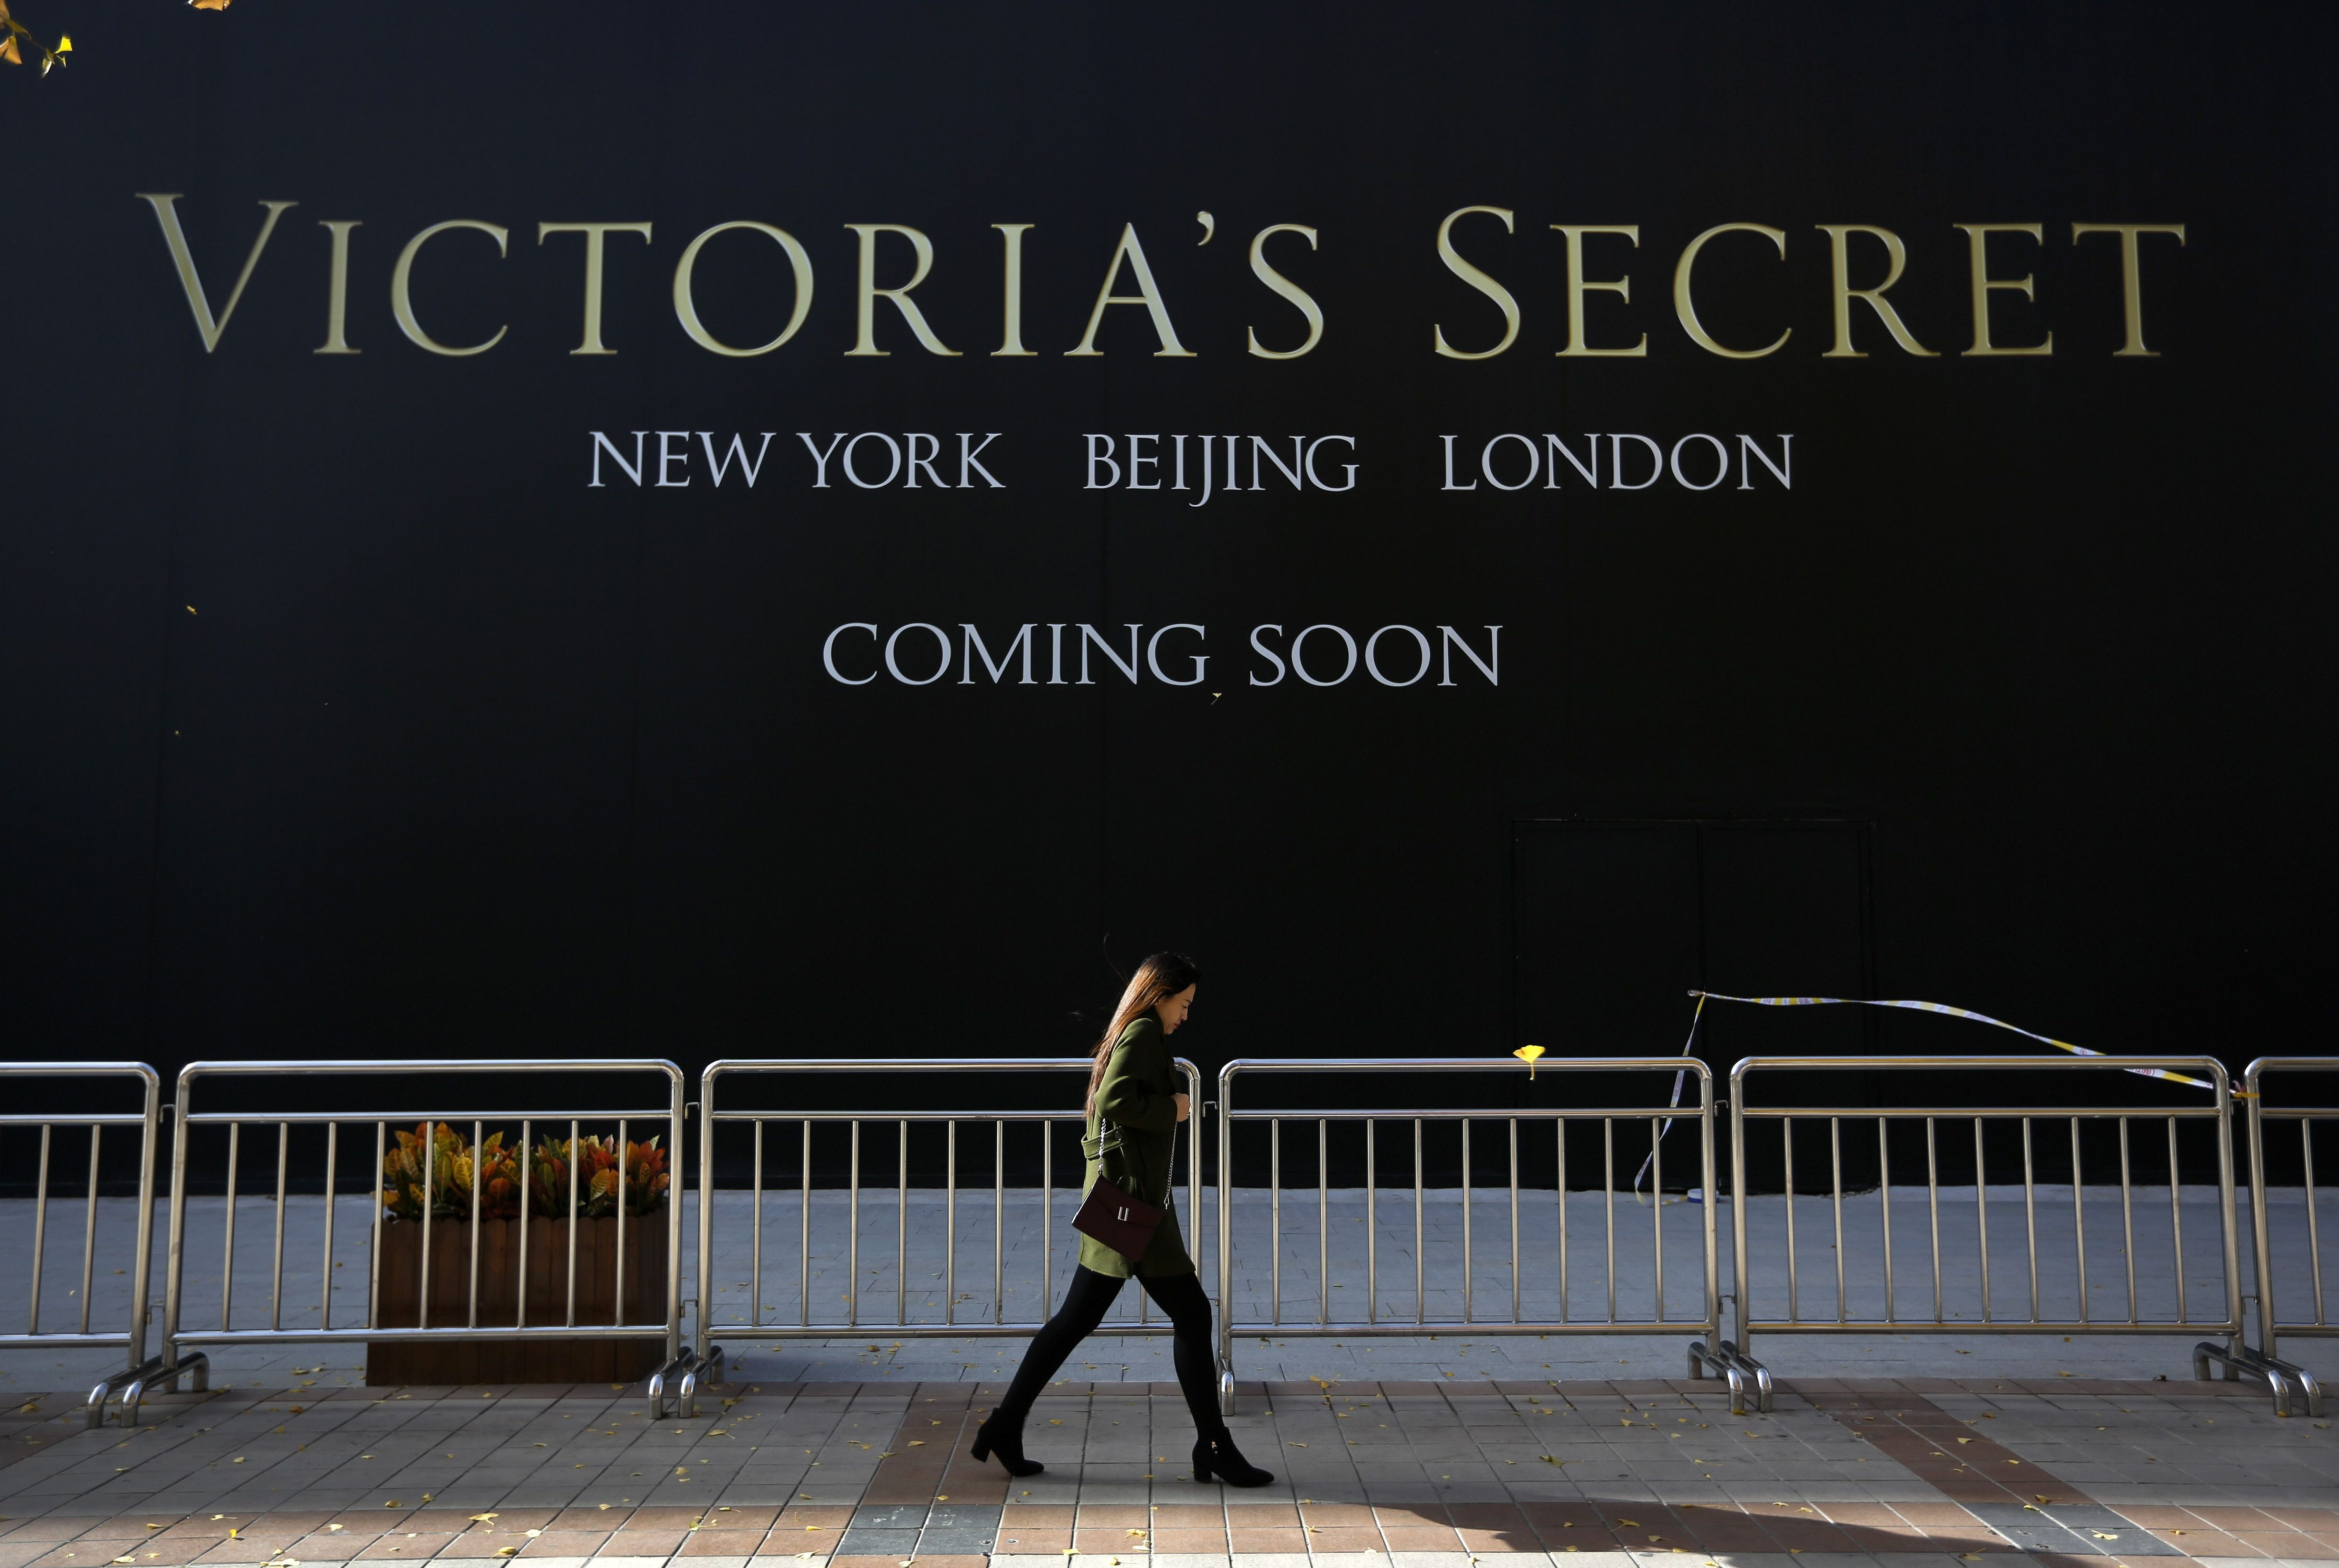 A Chinese woman walks past a Victoria's Secret store under construction in Wangfujing, Beijing.